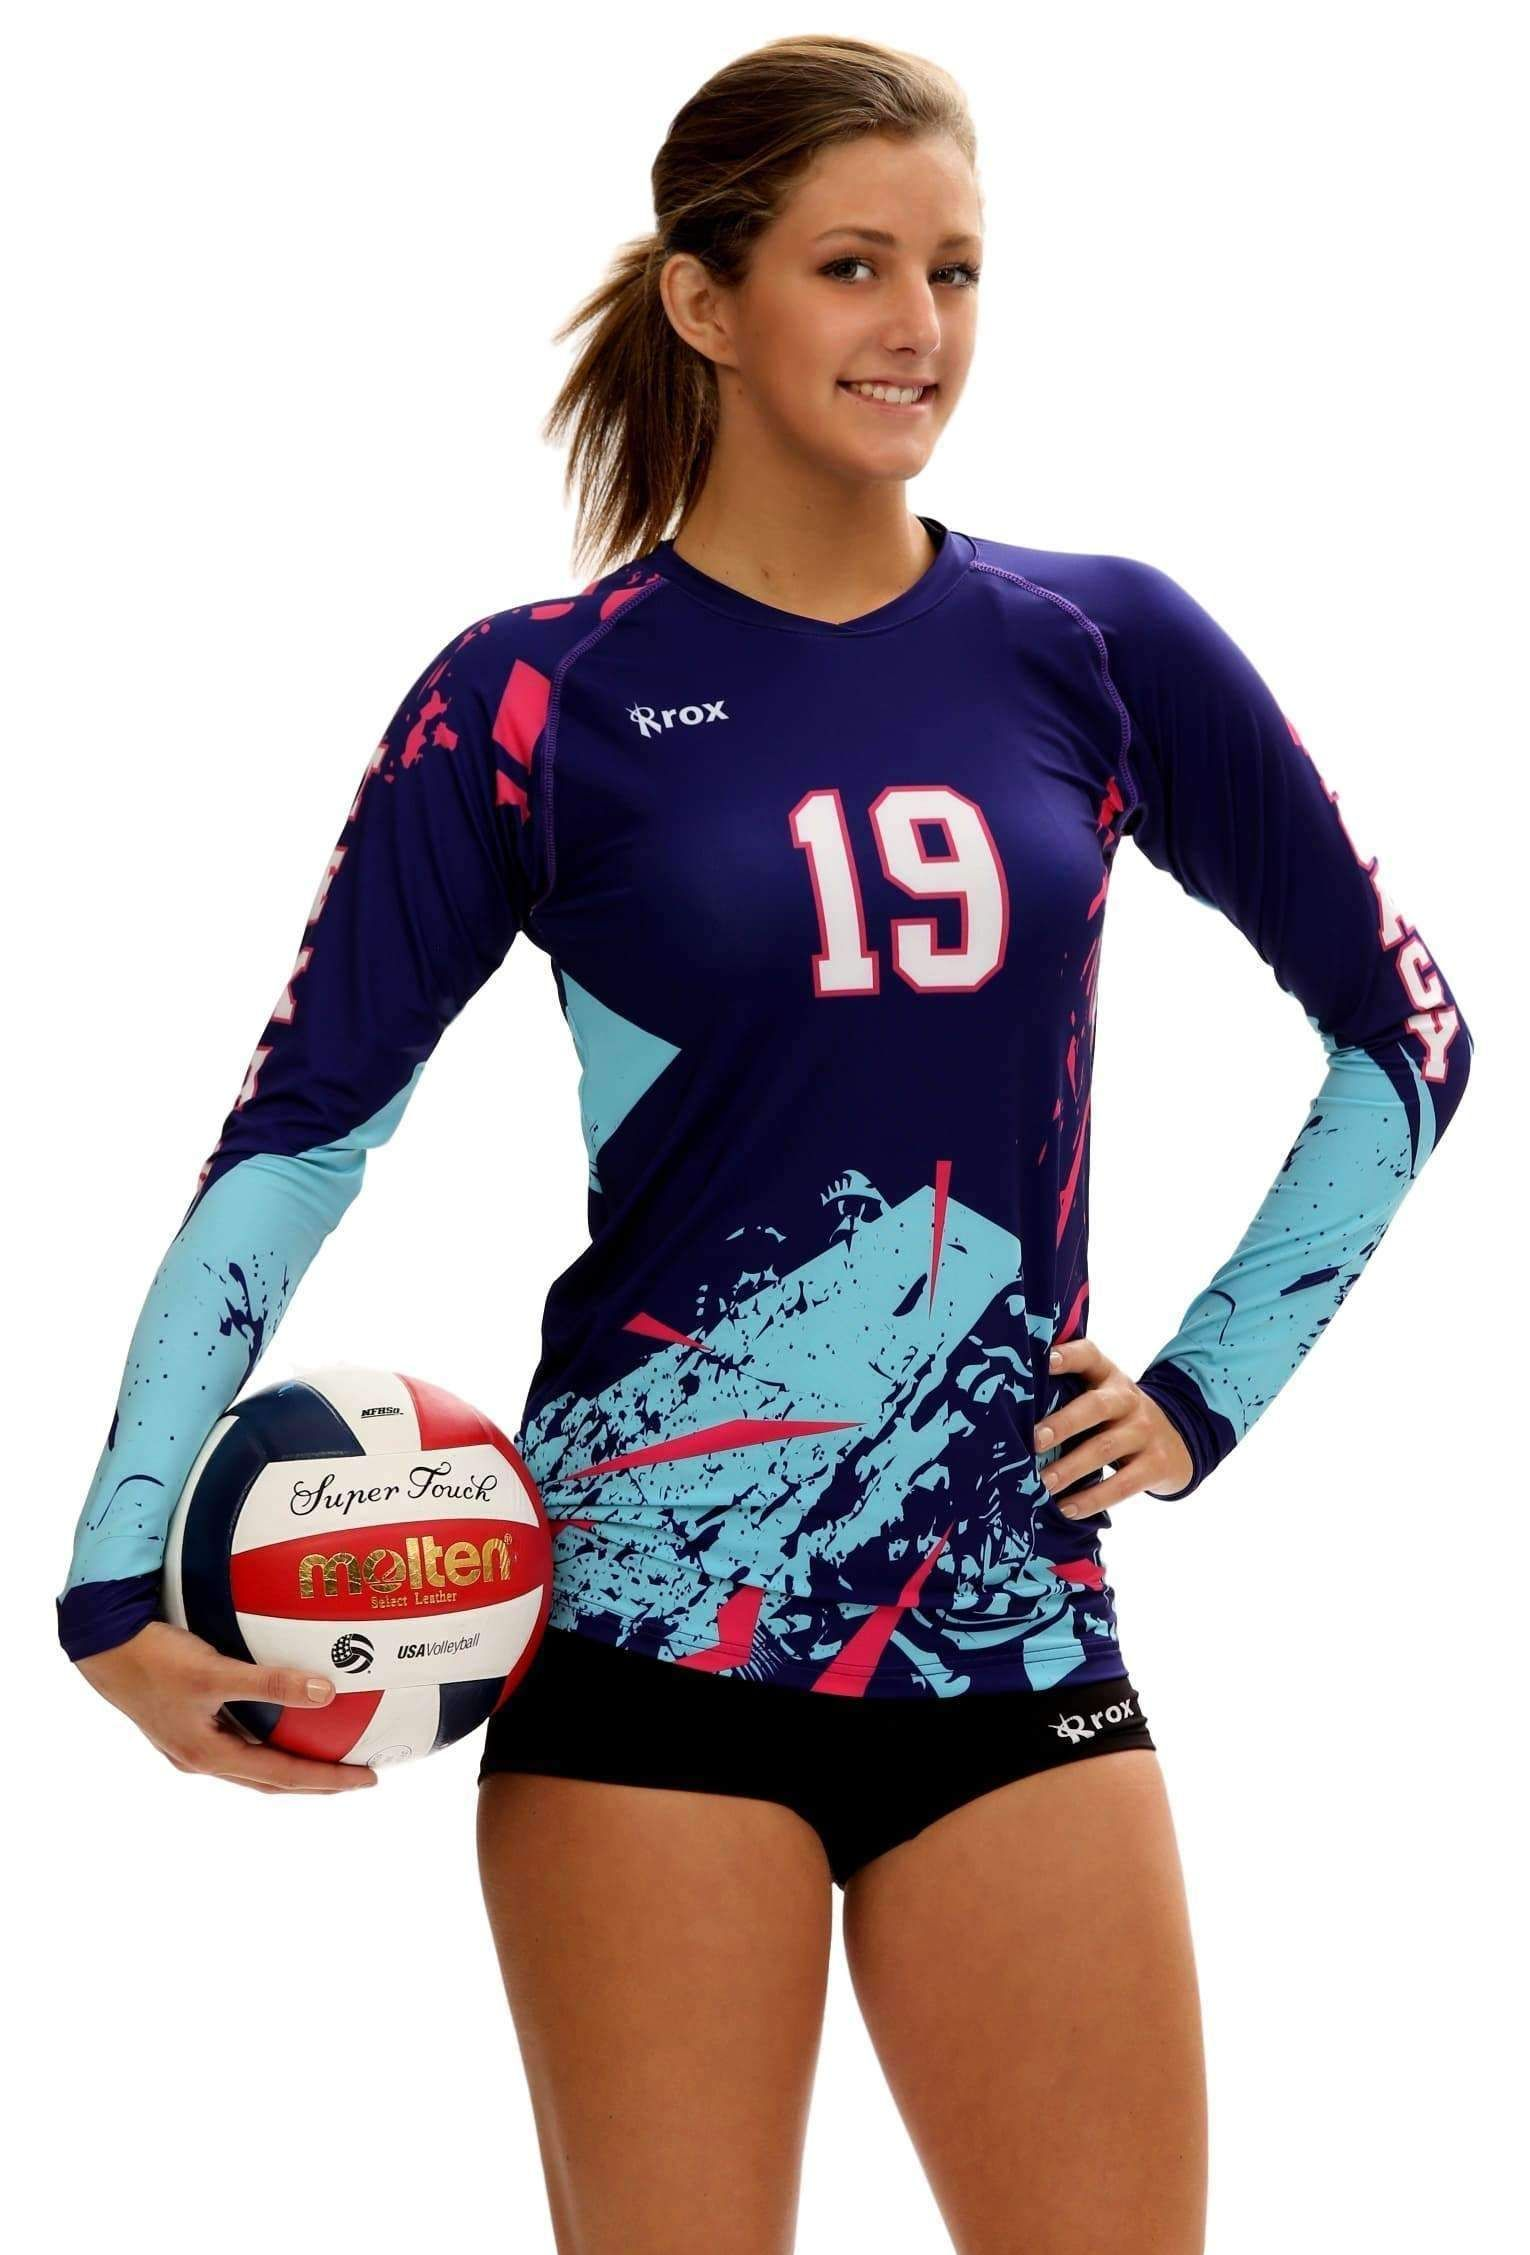 Shattered Women S Sublimated Volleyball Jersey Volleyball Uniforms Design Volleyball Jerseys Volleyball Jersey Design